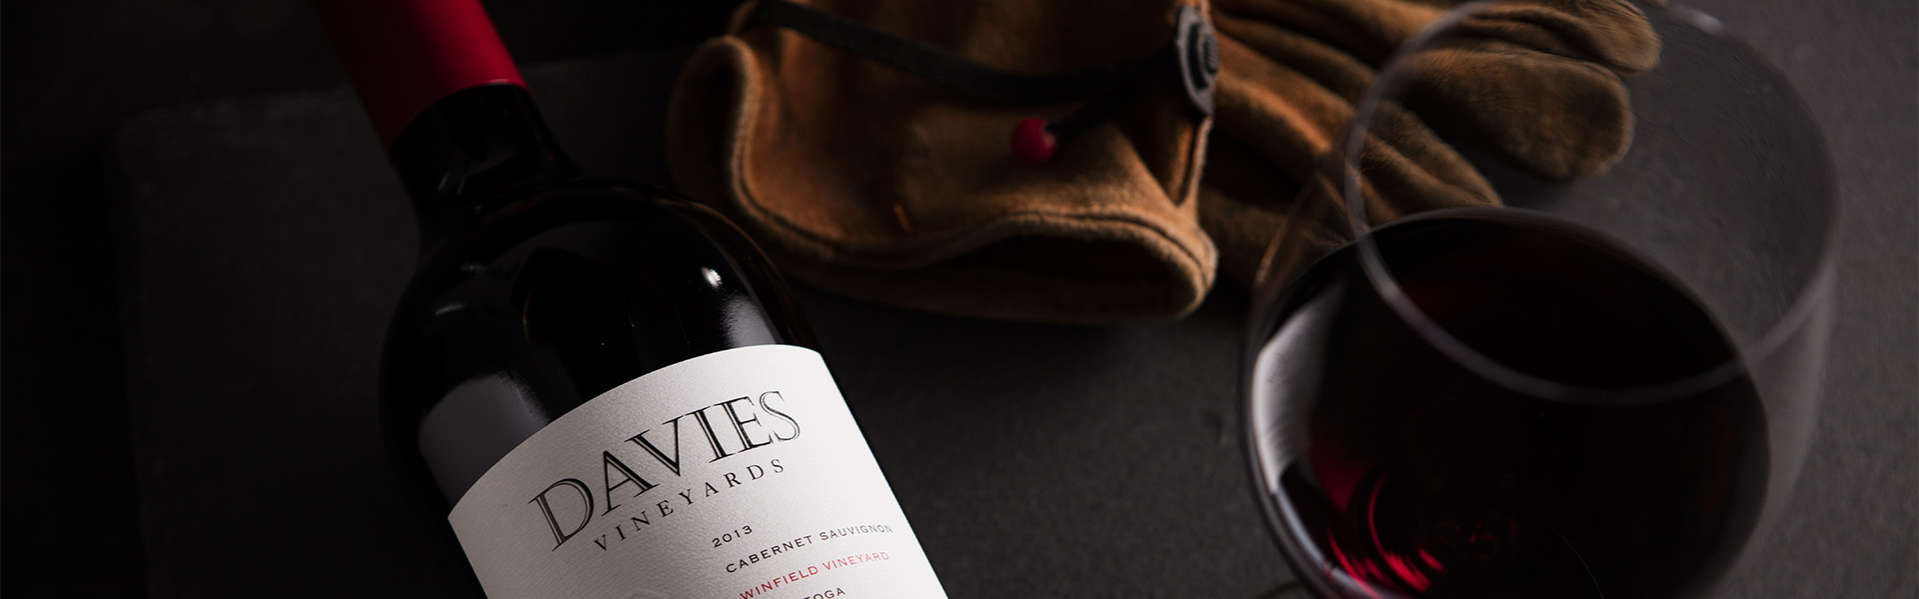 Davies Vineyards 2015 Winfield Vineyard Cabernet Sauvignon on a table with leather work gloves